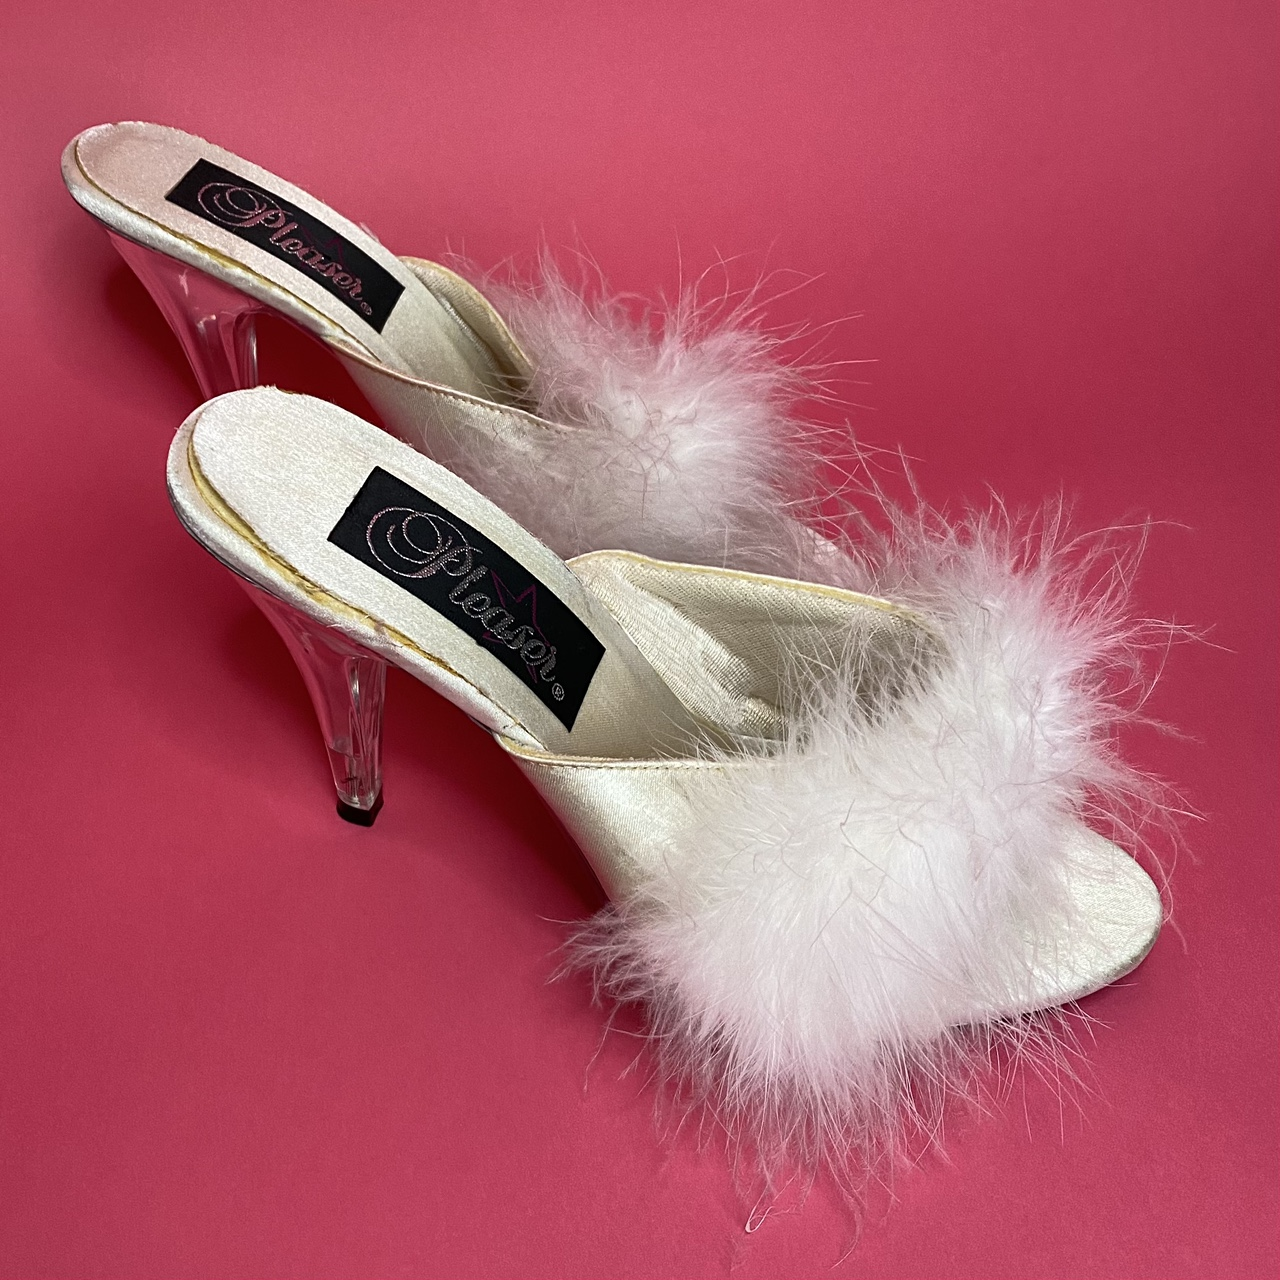 Product Image 1 - Classy date night heels by